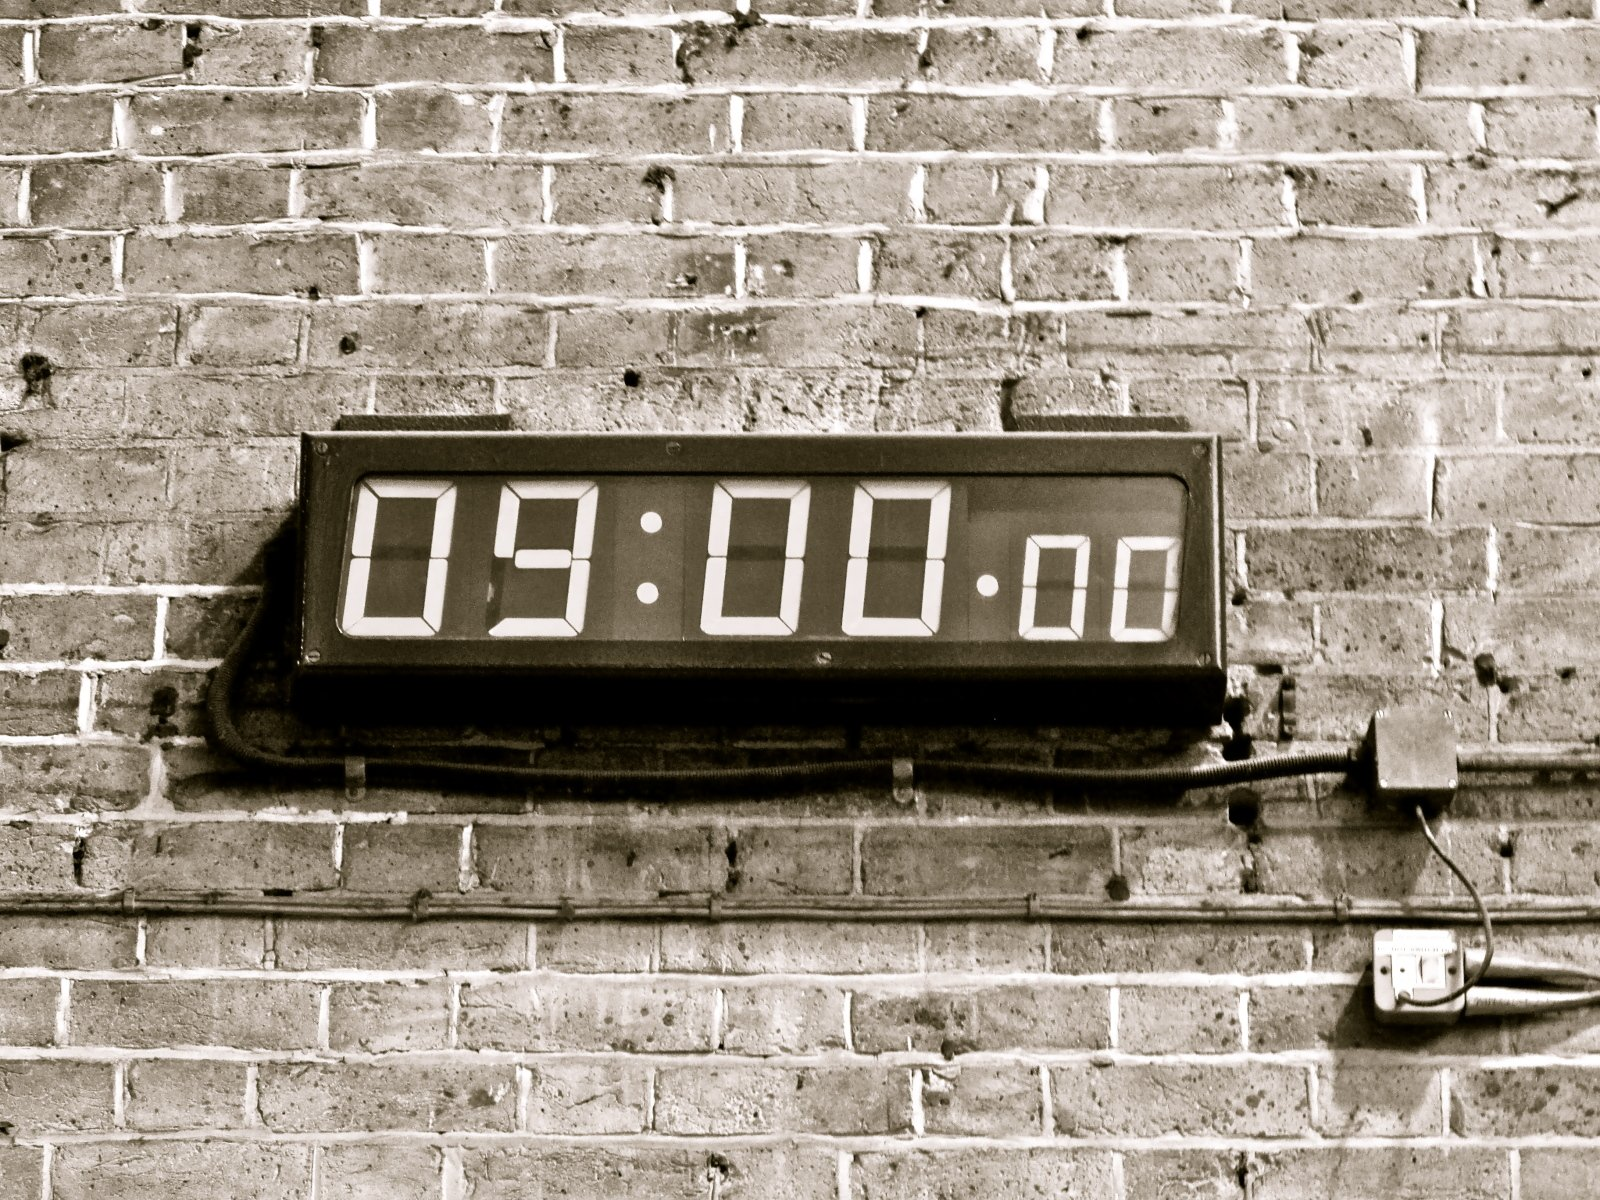 Time is running out...